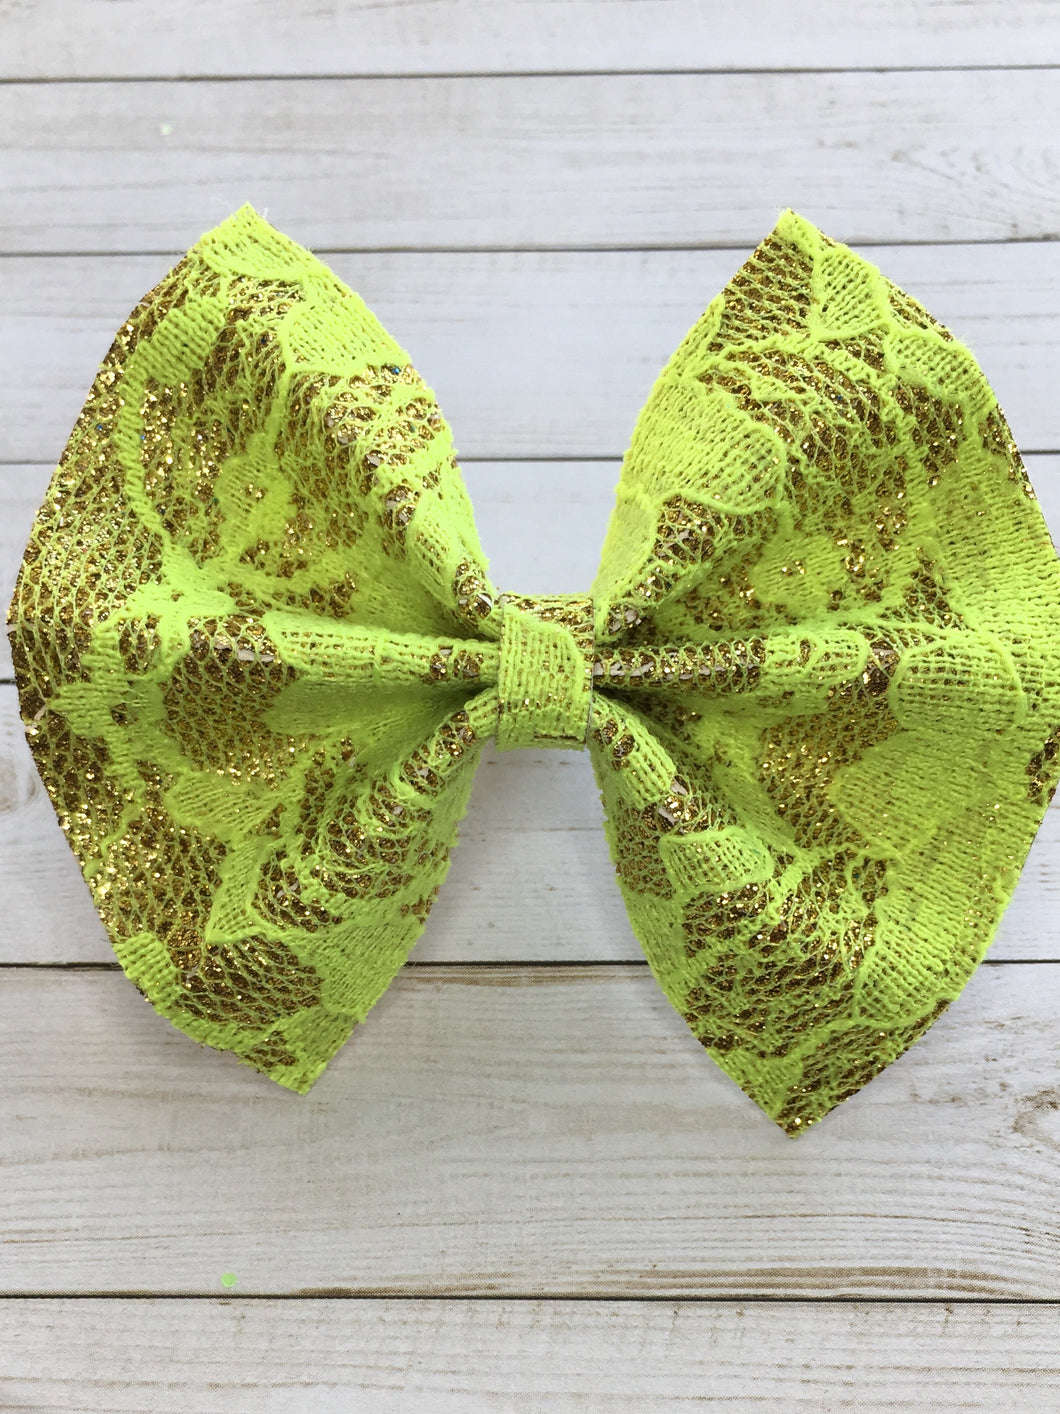 Gold glitter with bright neon yellow lace